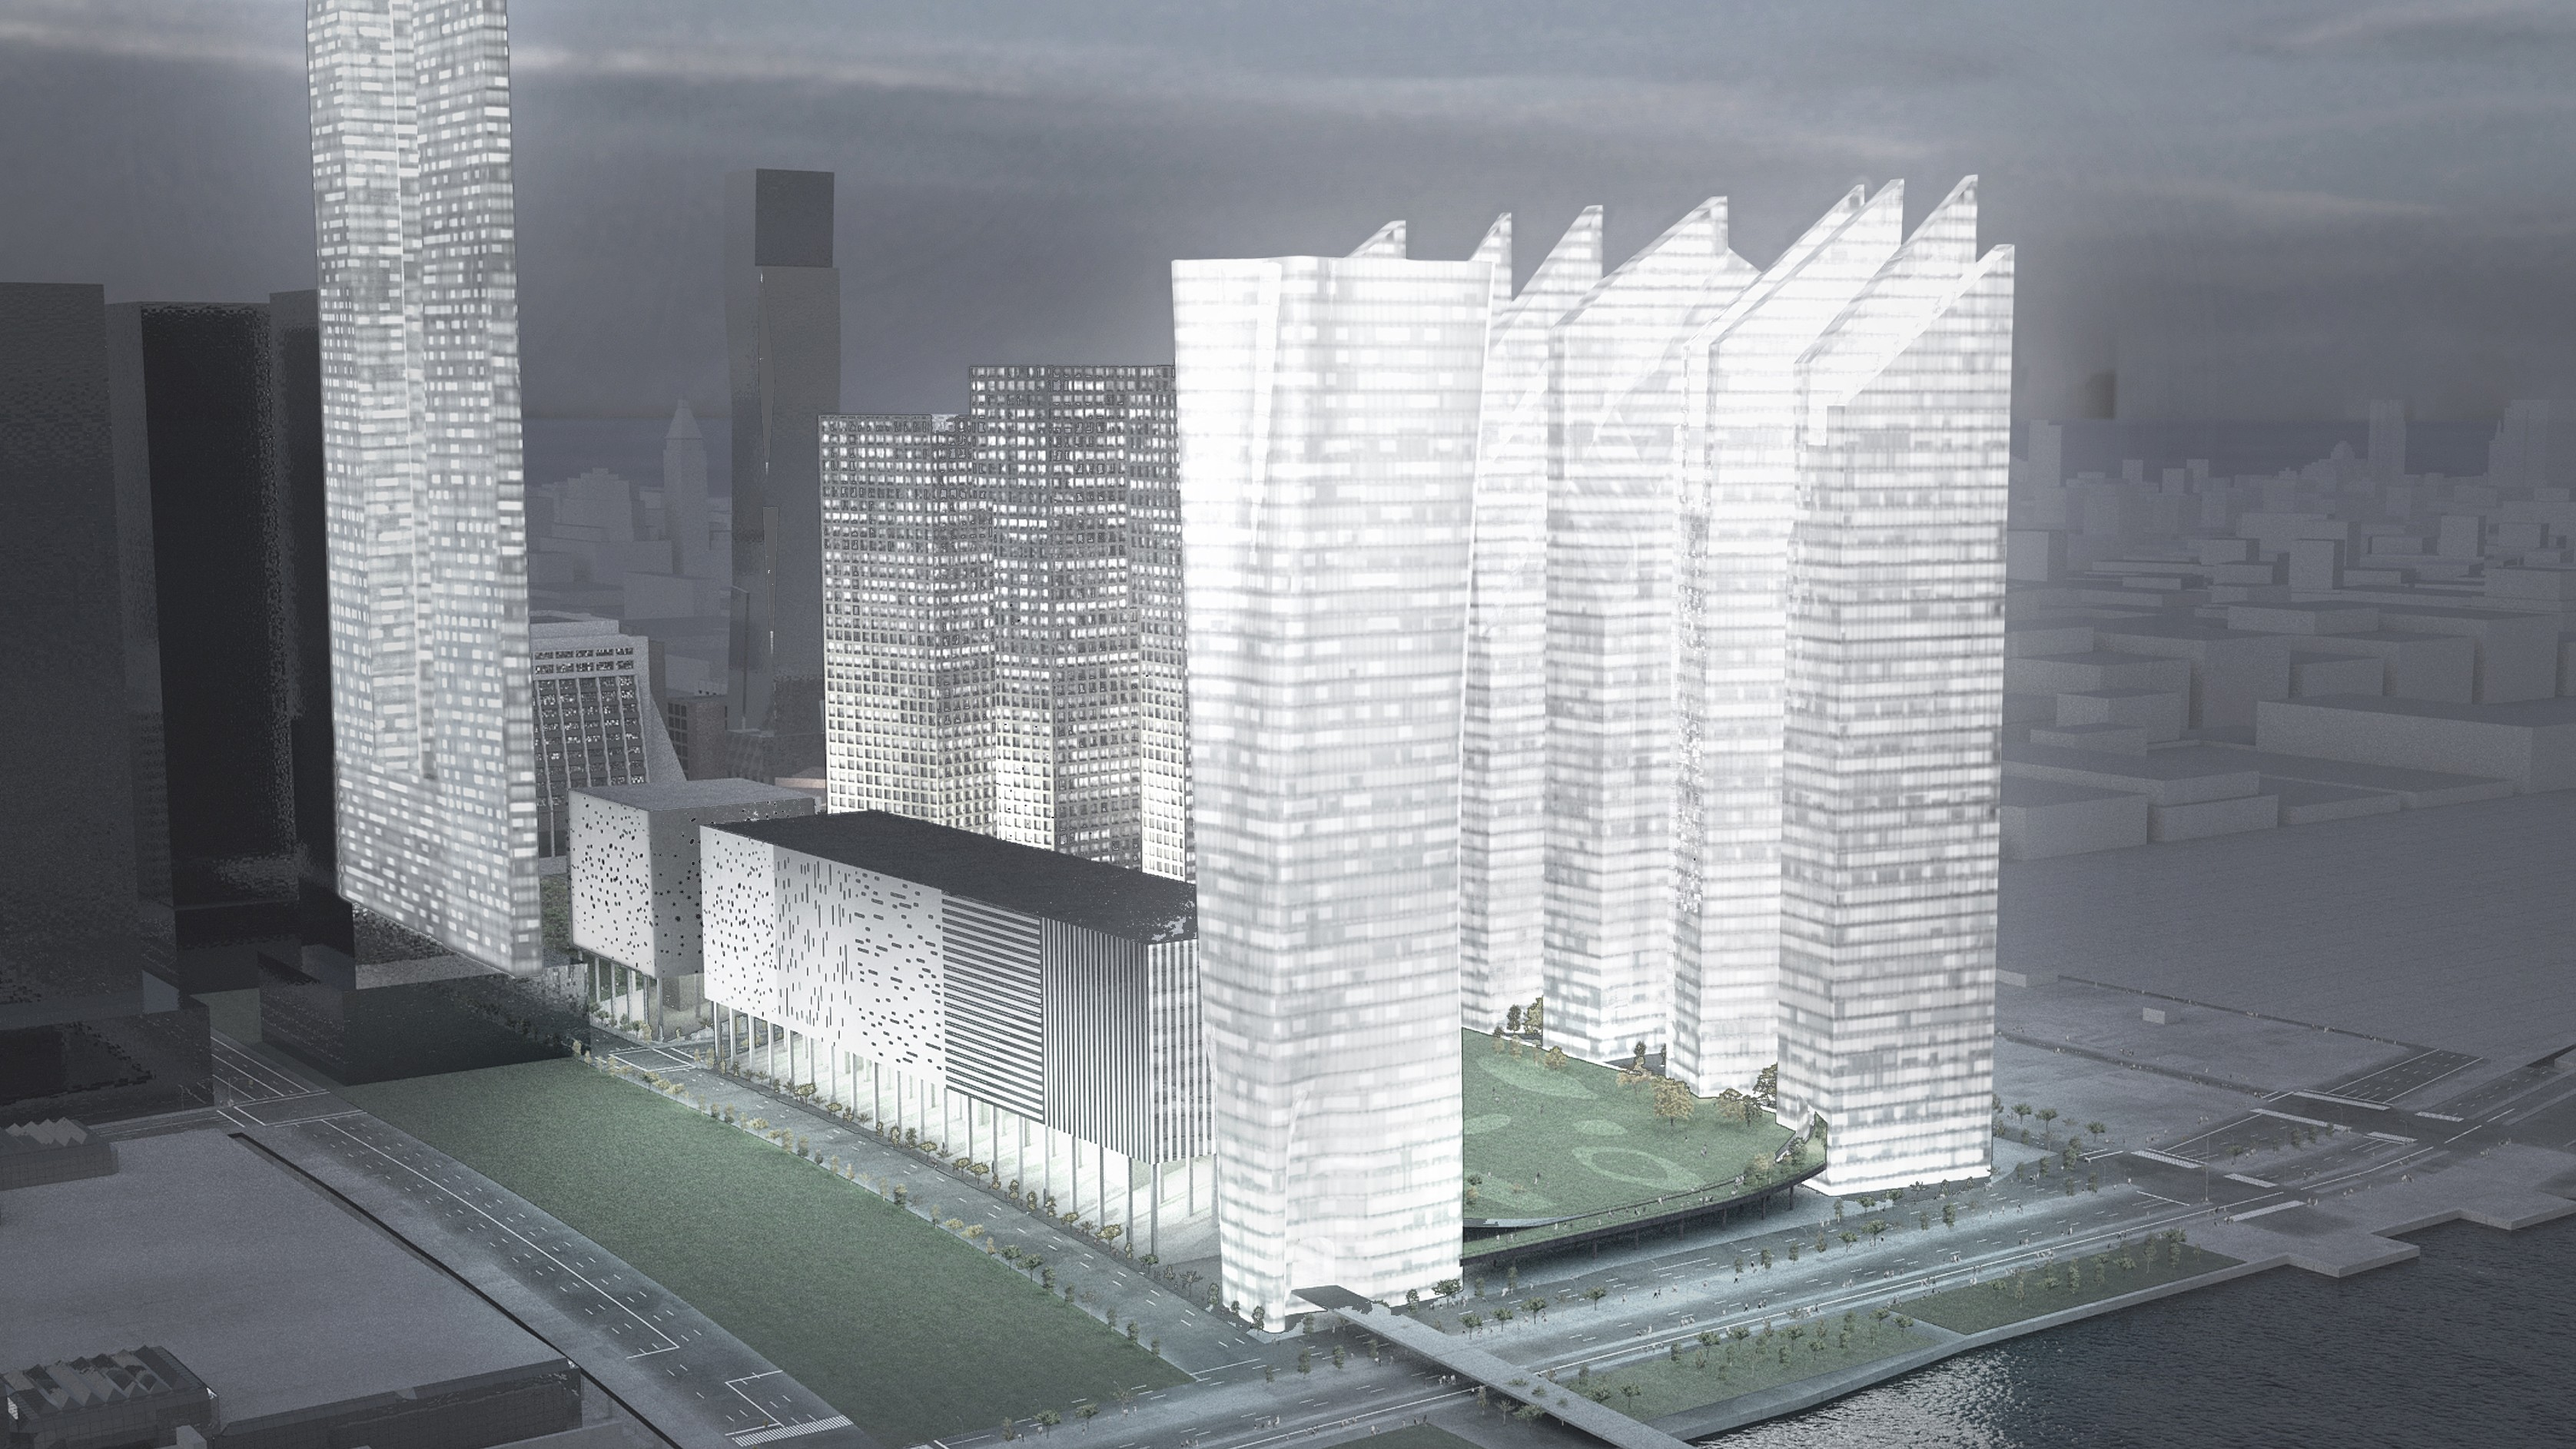 https://stevenholl.sfo2.digitaloceanspaces.com/uploads/projects/project-images/StevenHollArchitects_HudsonYards_M-6_WH.jpg